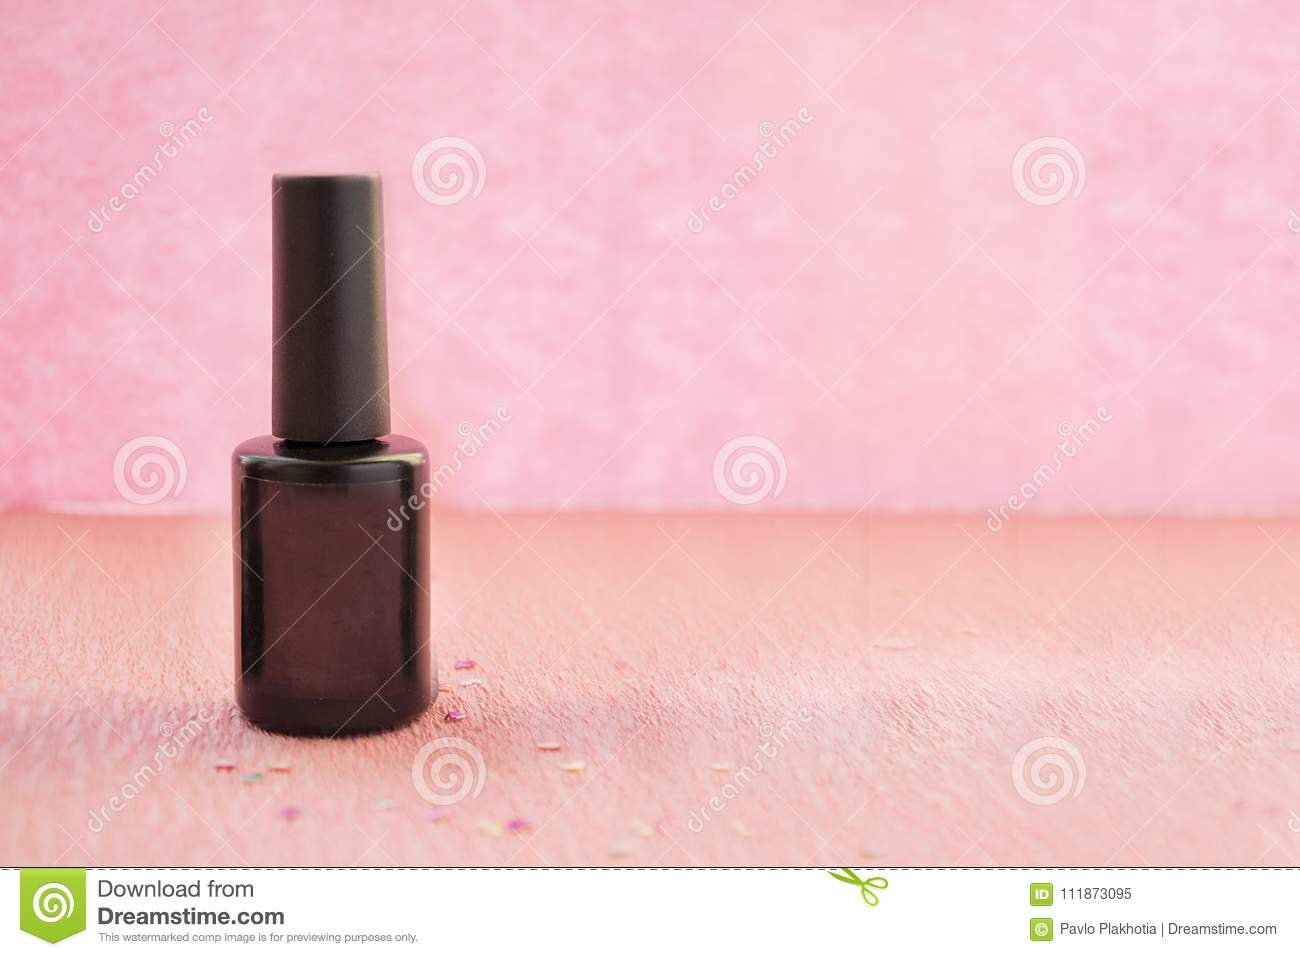 bottle of gel nail polish with template black label over pink